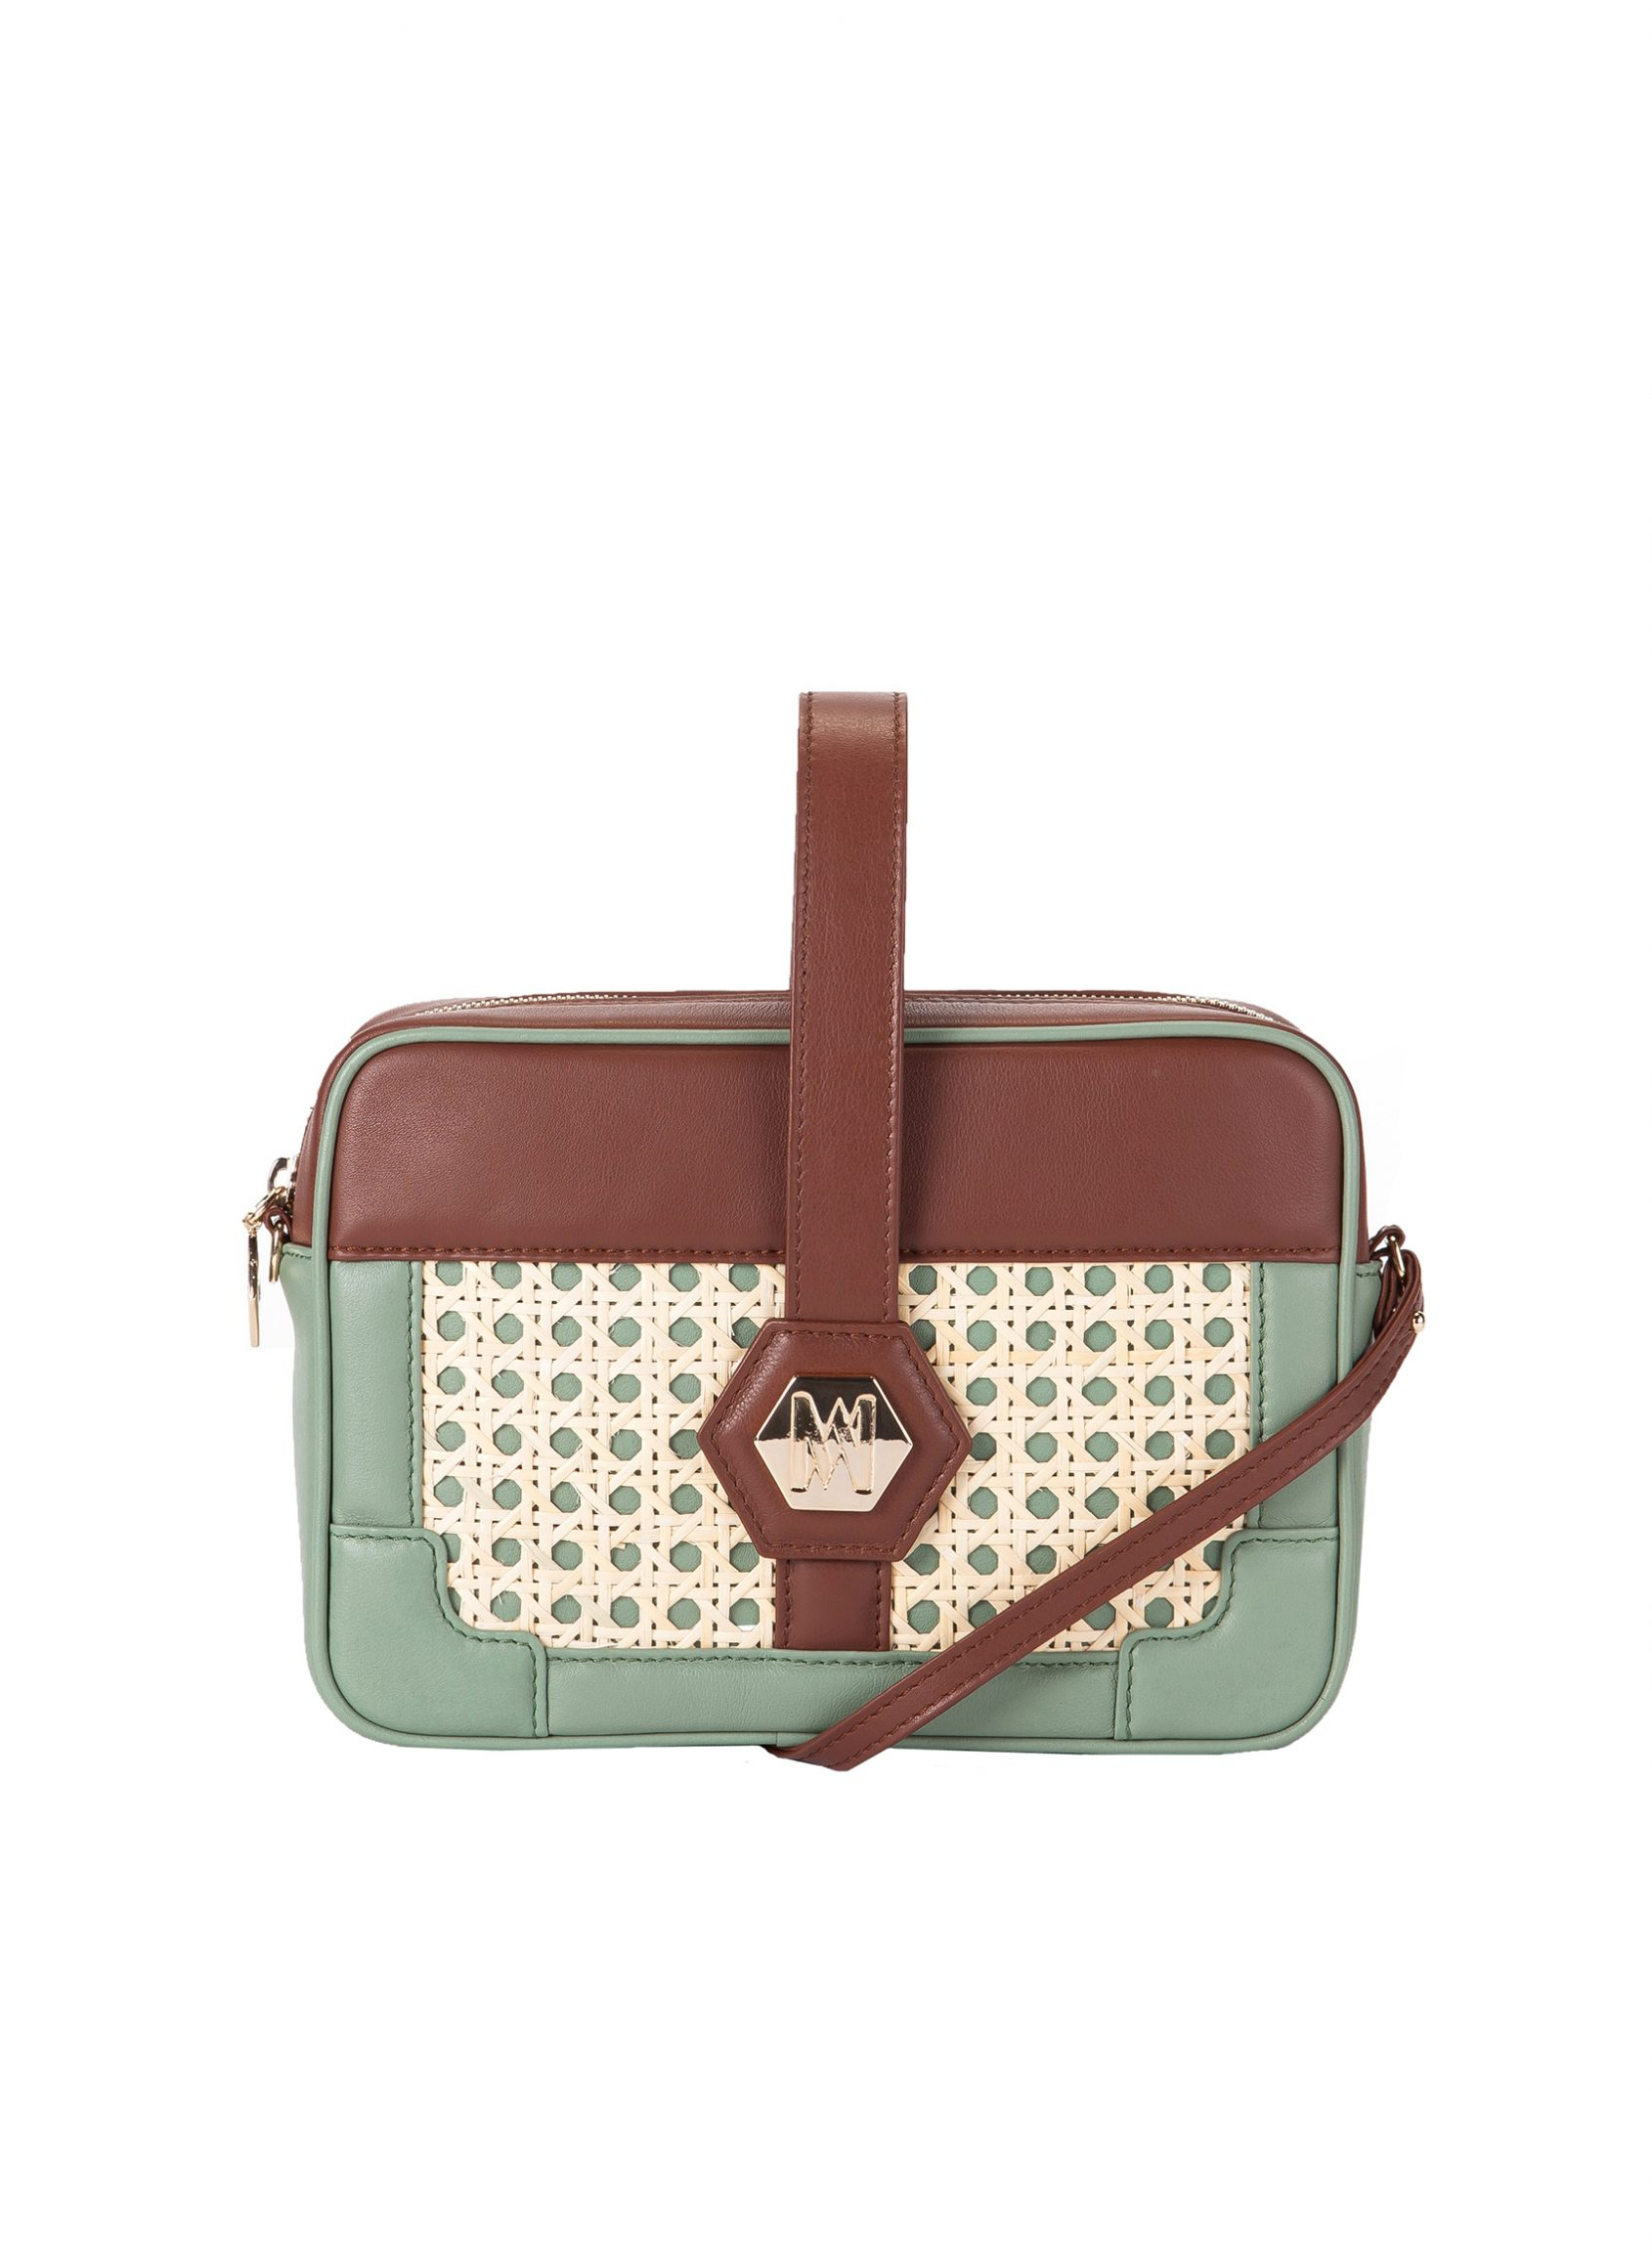 bolso chocolate mint con forma rectangular bicolor en mint y marrón. Piel de novillo y mimbre.